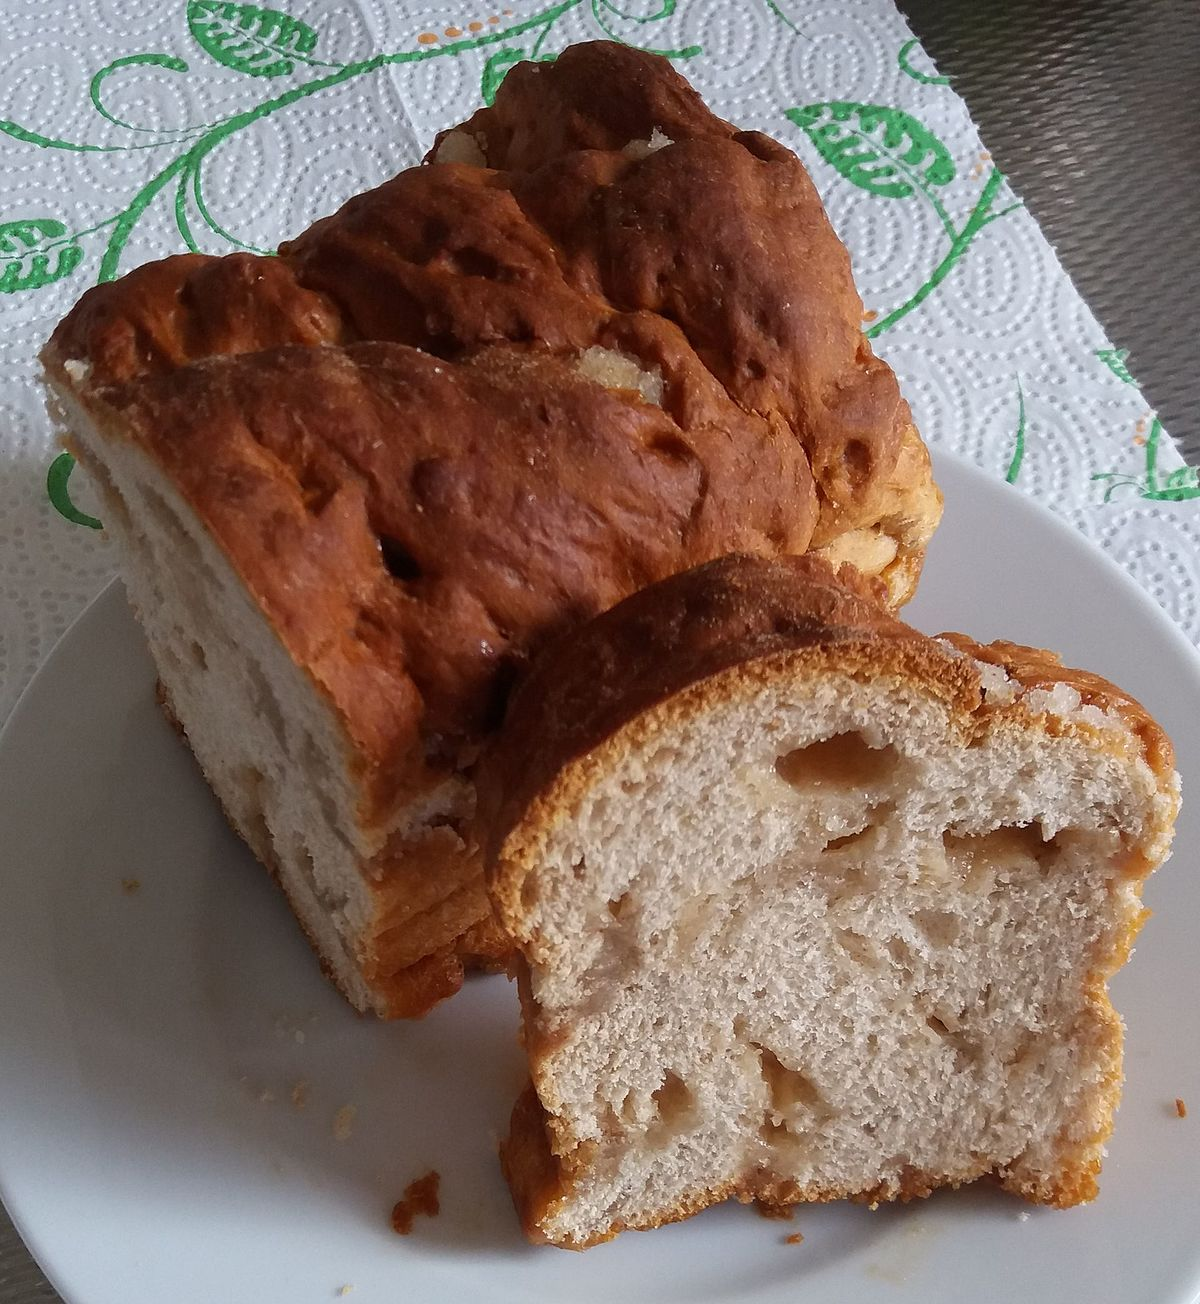 Pictures Of French Fries Suikerbrood - Wikipedi...